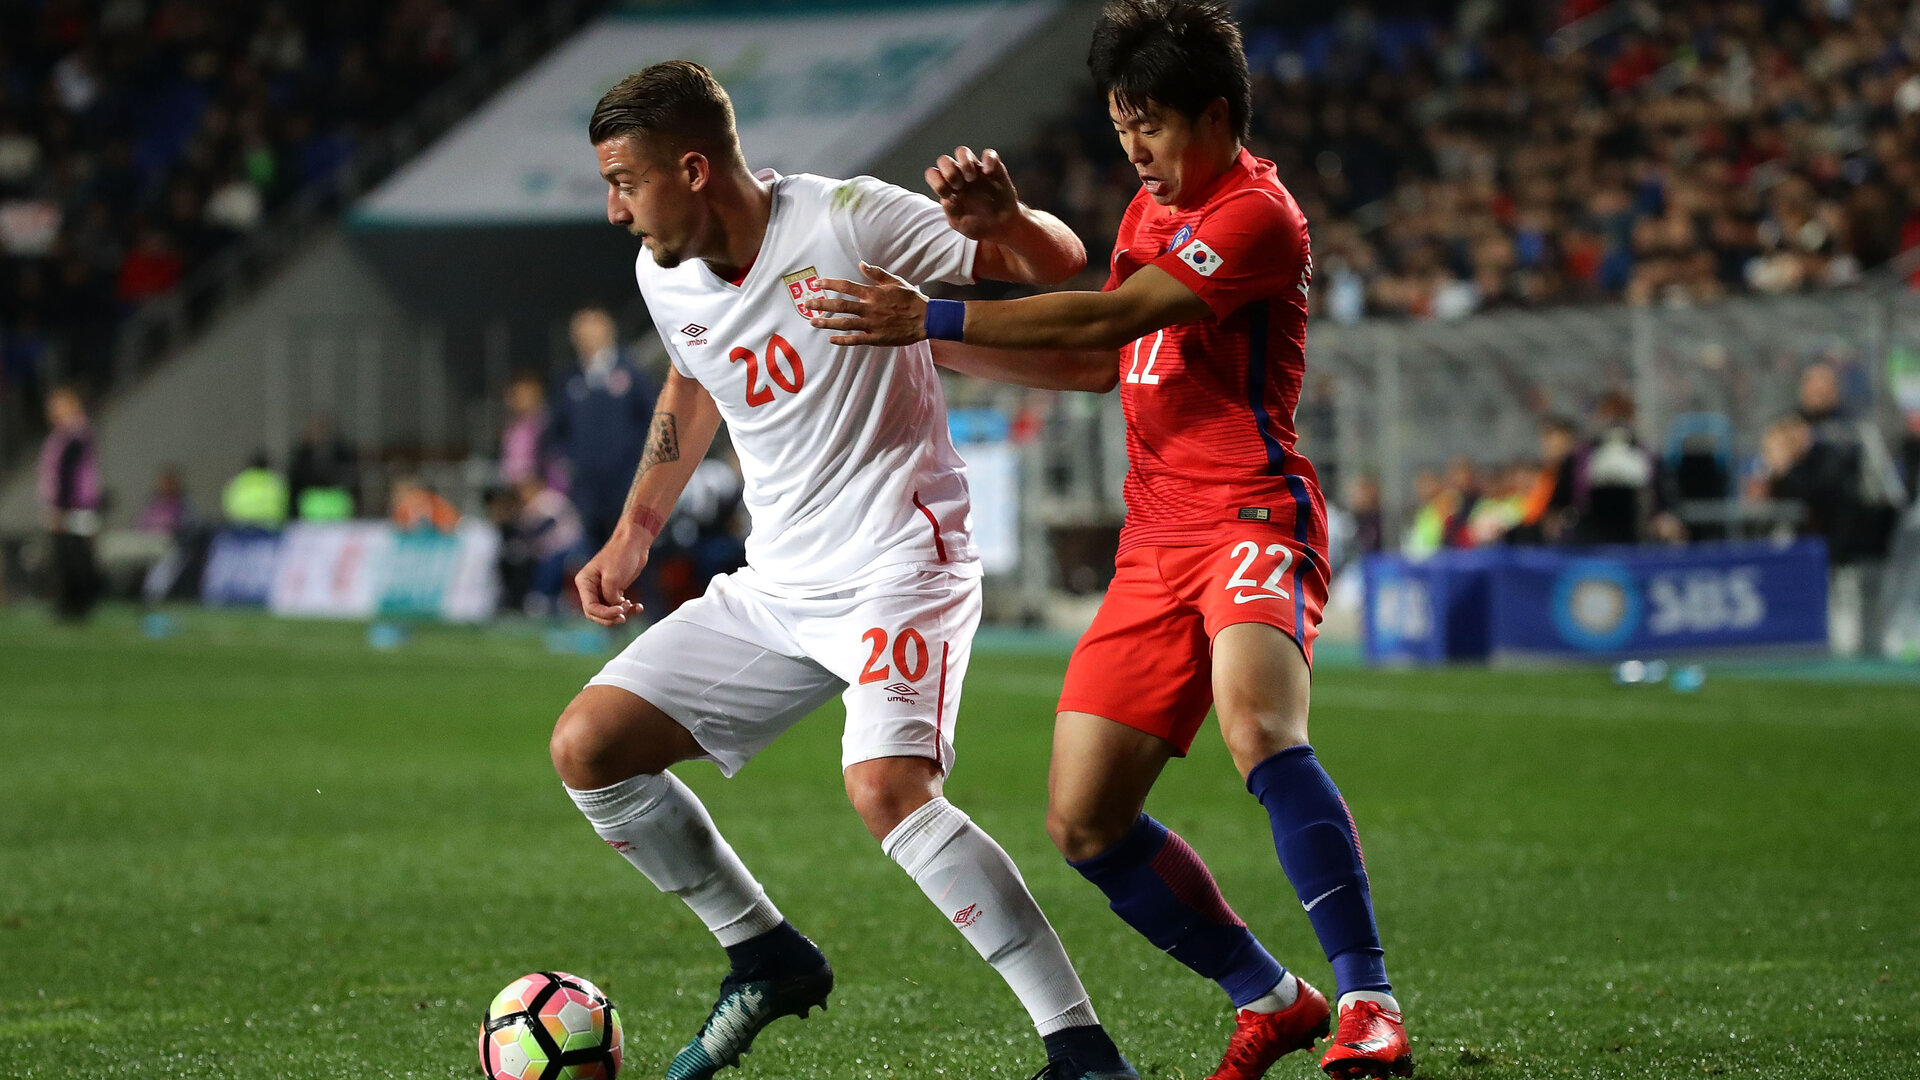 ULSAN, SOUTH KOREA - NOVEMBER 14:  Sergej Milinkovic-Savic of Serbia competes for the ball with Kwon Chang-Hoon of South Korea during the international friendly match between South Korea and Serbia at Ulsan World Cup Stadium on November 14, 2017 in Ulsan, South Korea.  (Photo by Chung Sung-Jun/Getty Images)